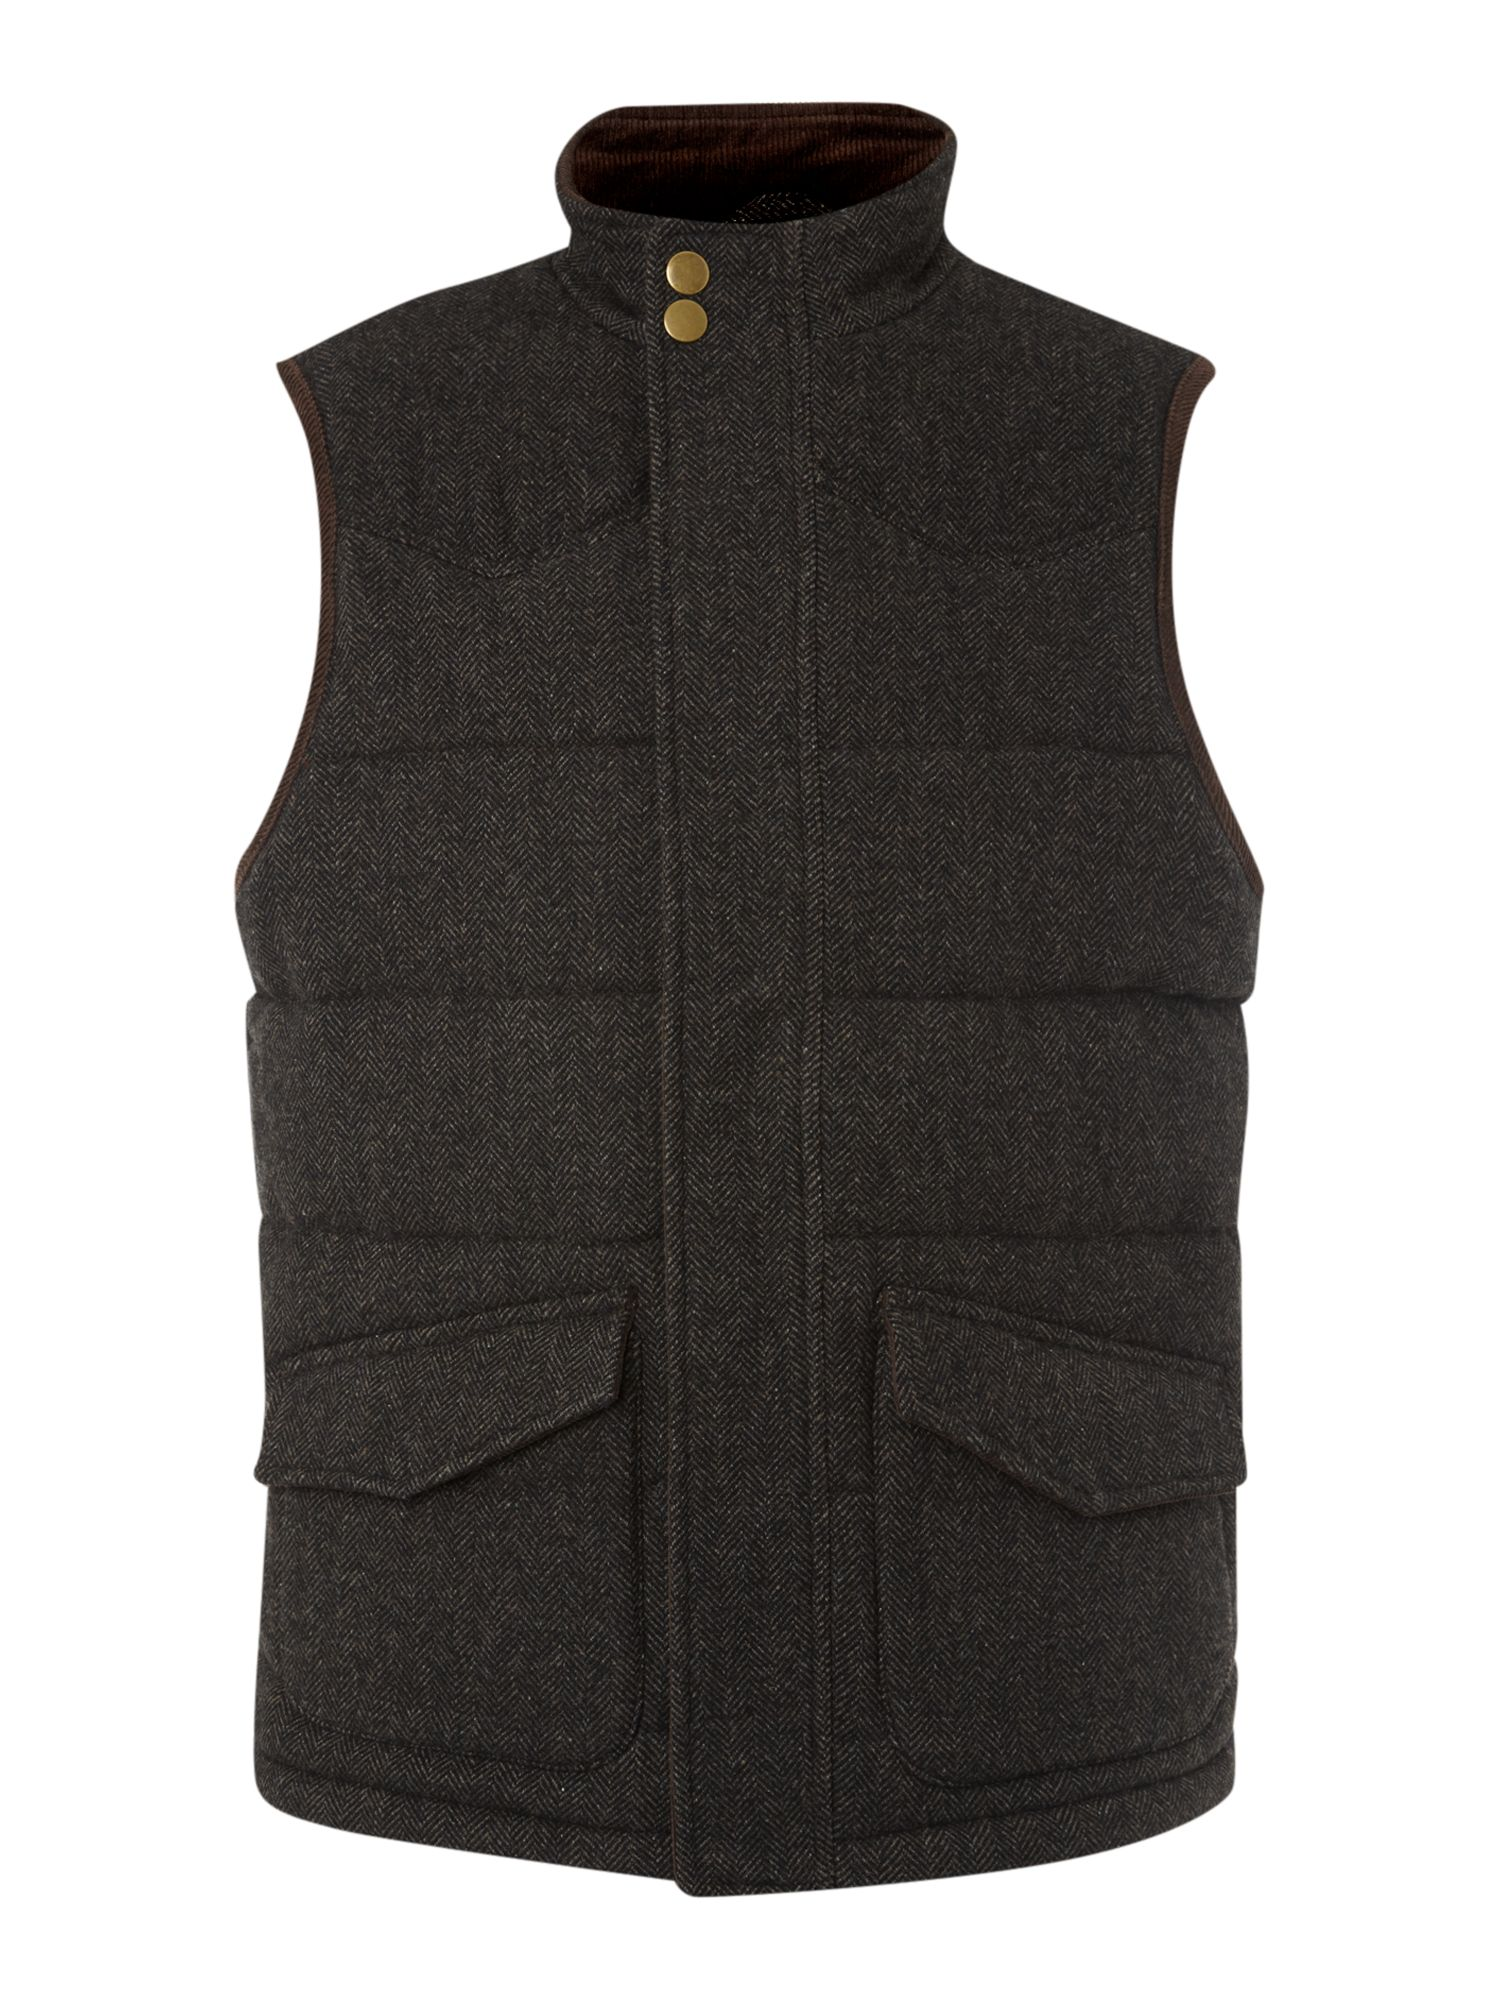 Hayfield tweed gilet